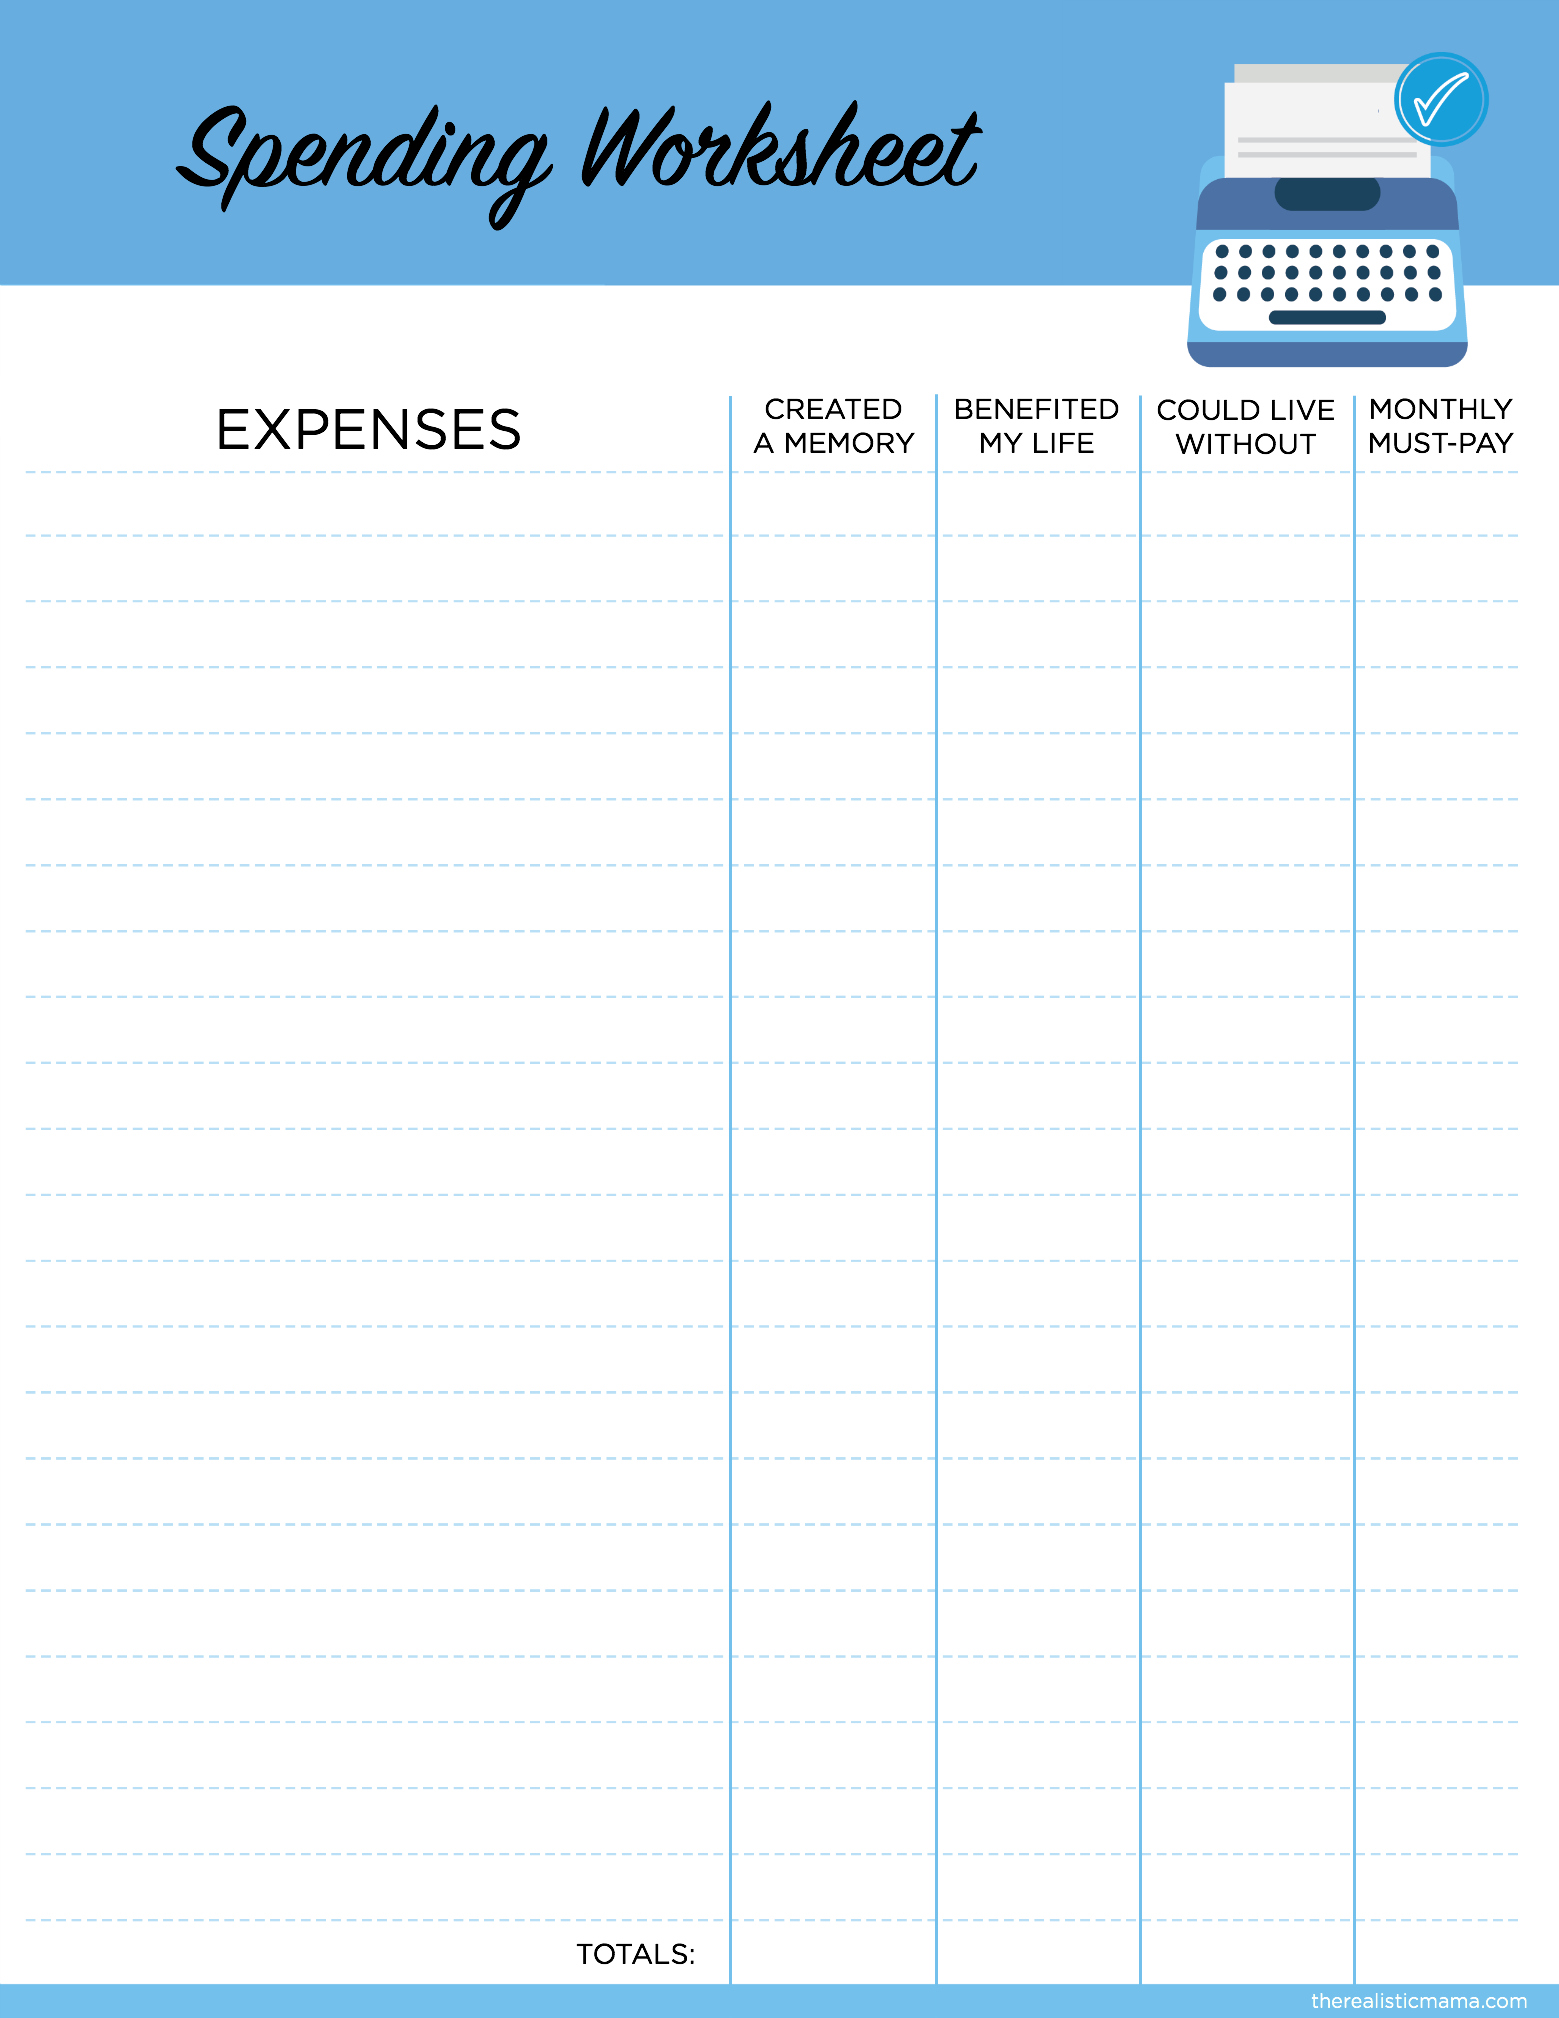 Spending Worksheet | Save Money